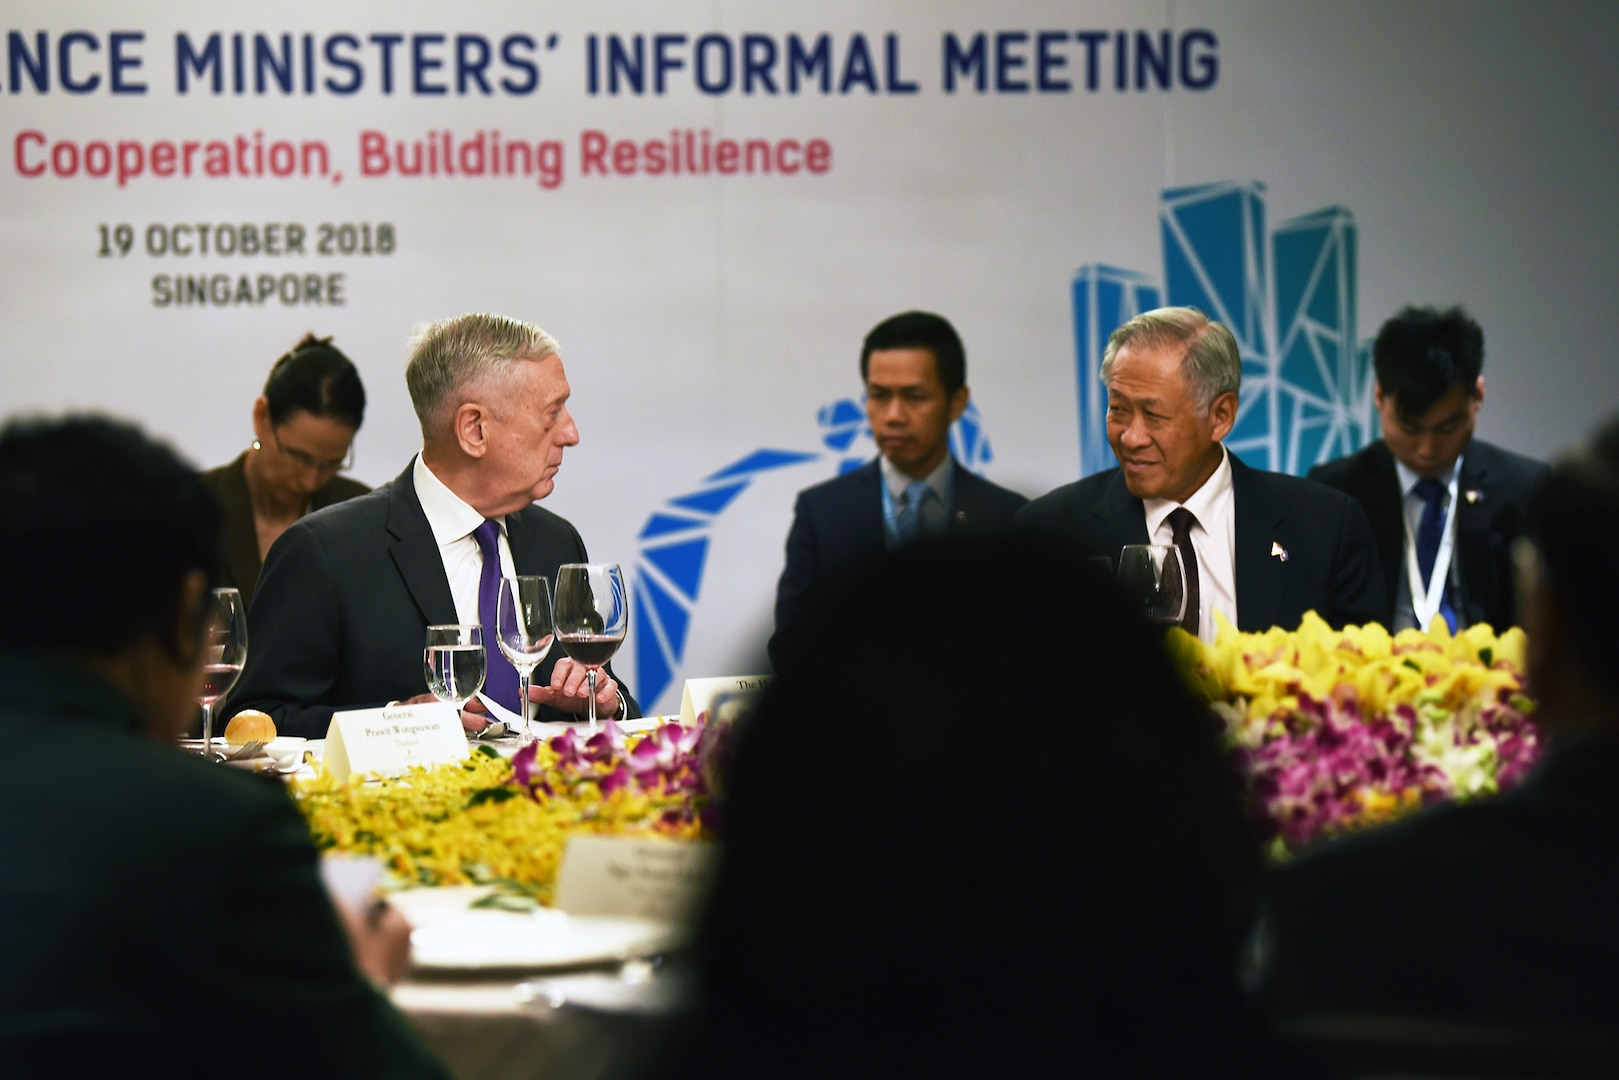 Readout of Secretary Mattis' Meeting with Singaporean Minister of Defence Dr. Ng Eng Hen